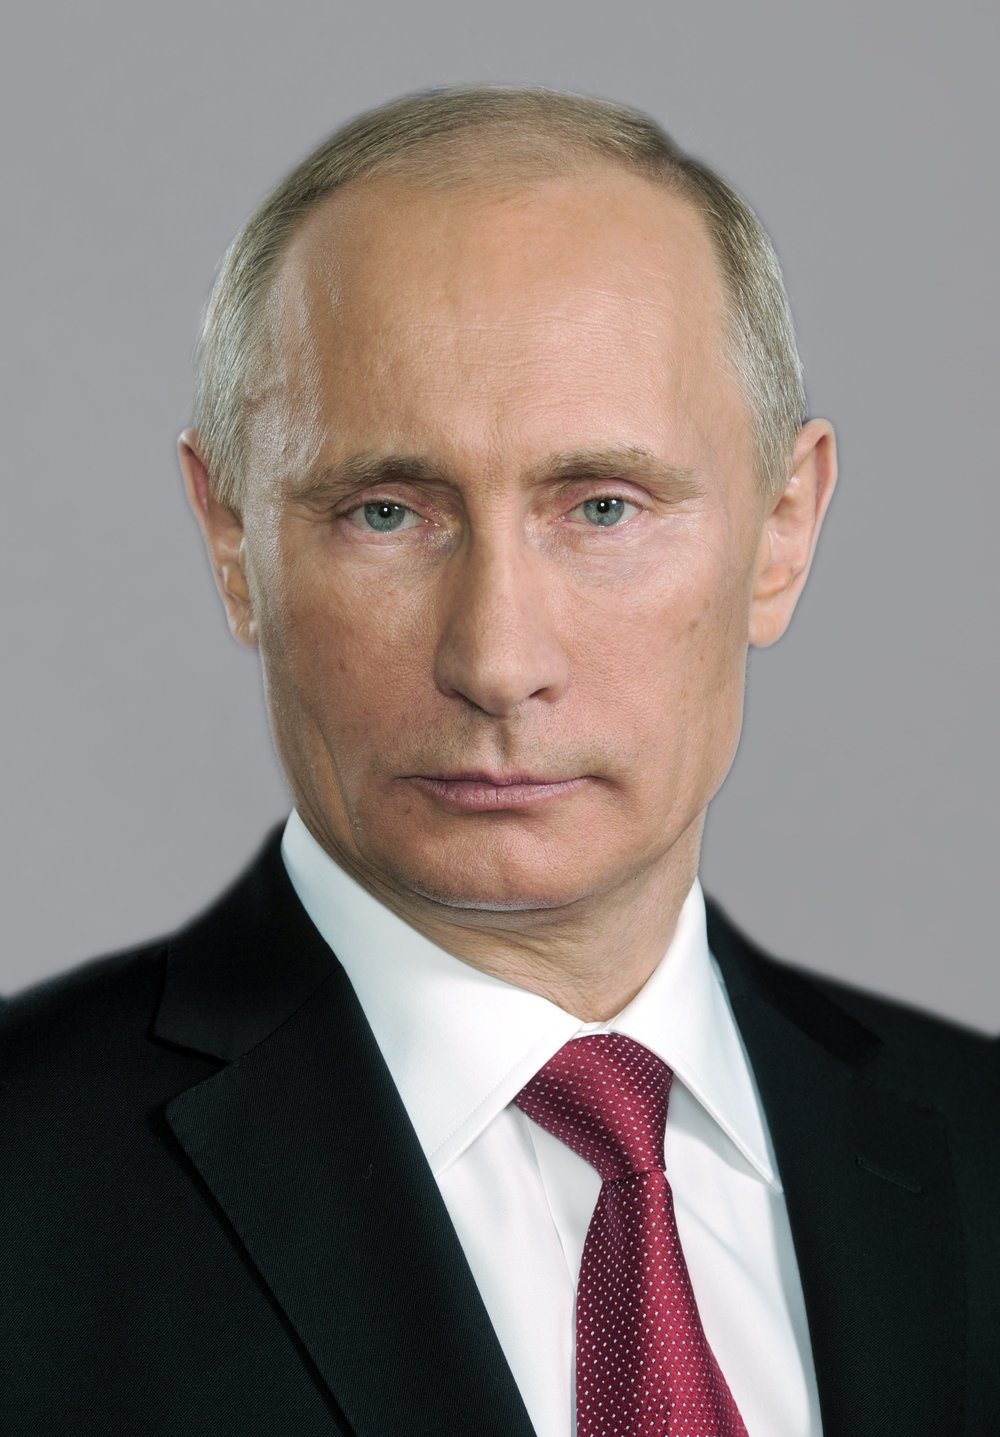 Russian President Vladimir Putin. Credit: Presidential Press and Information Office.